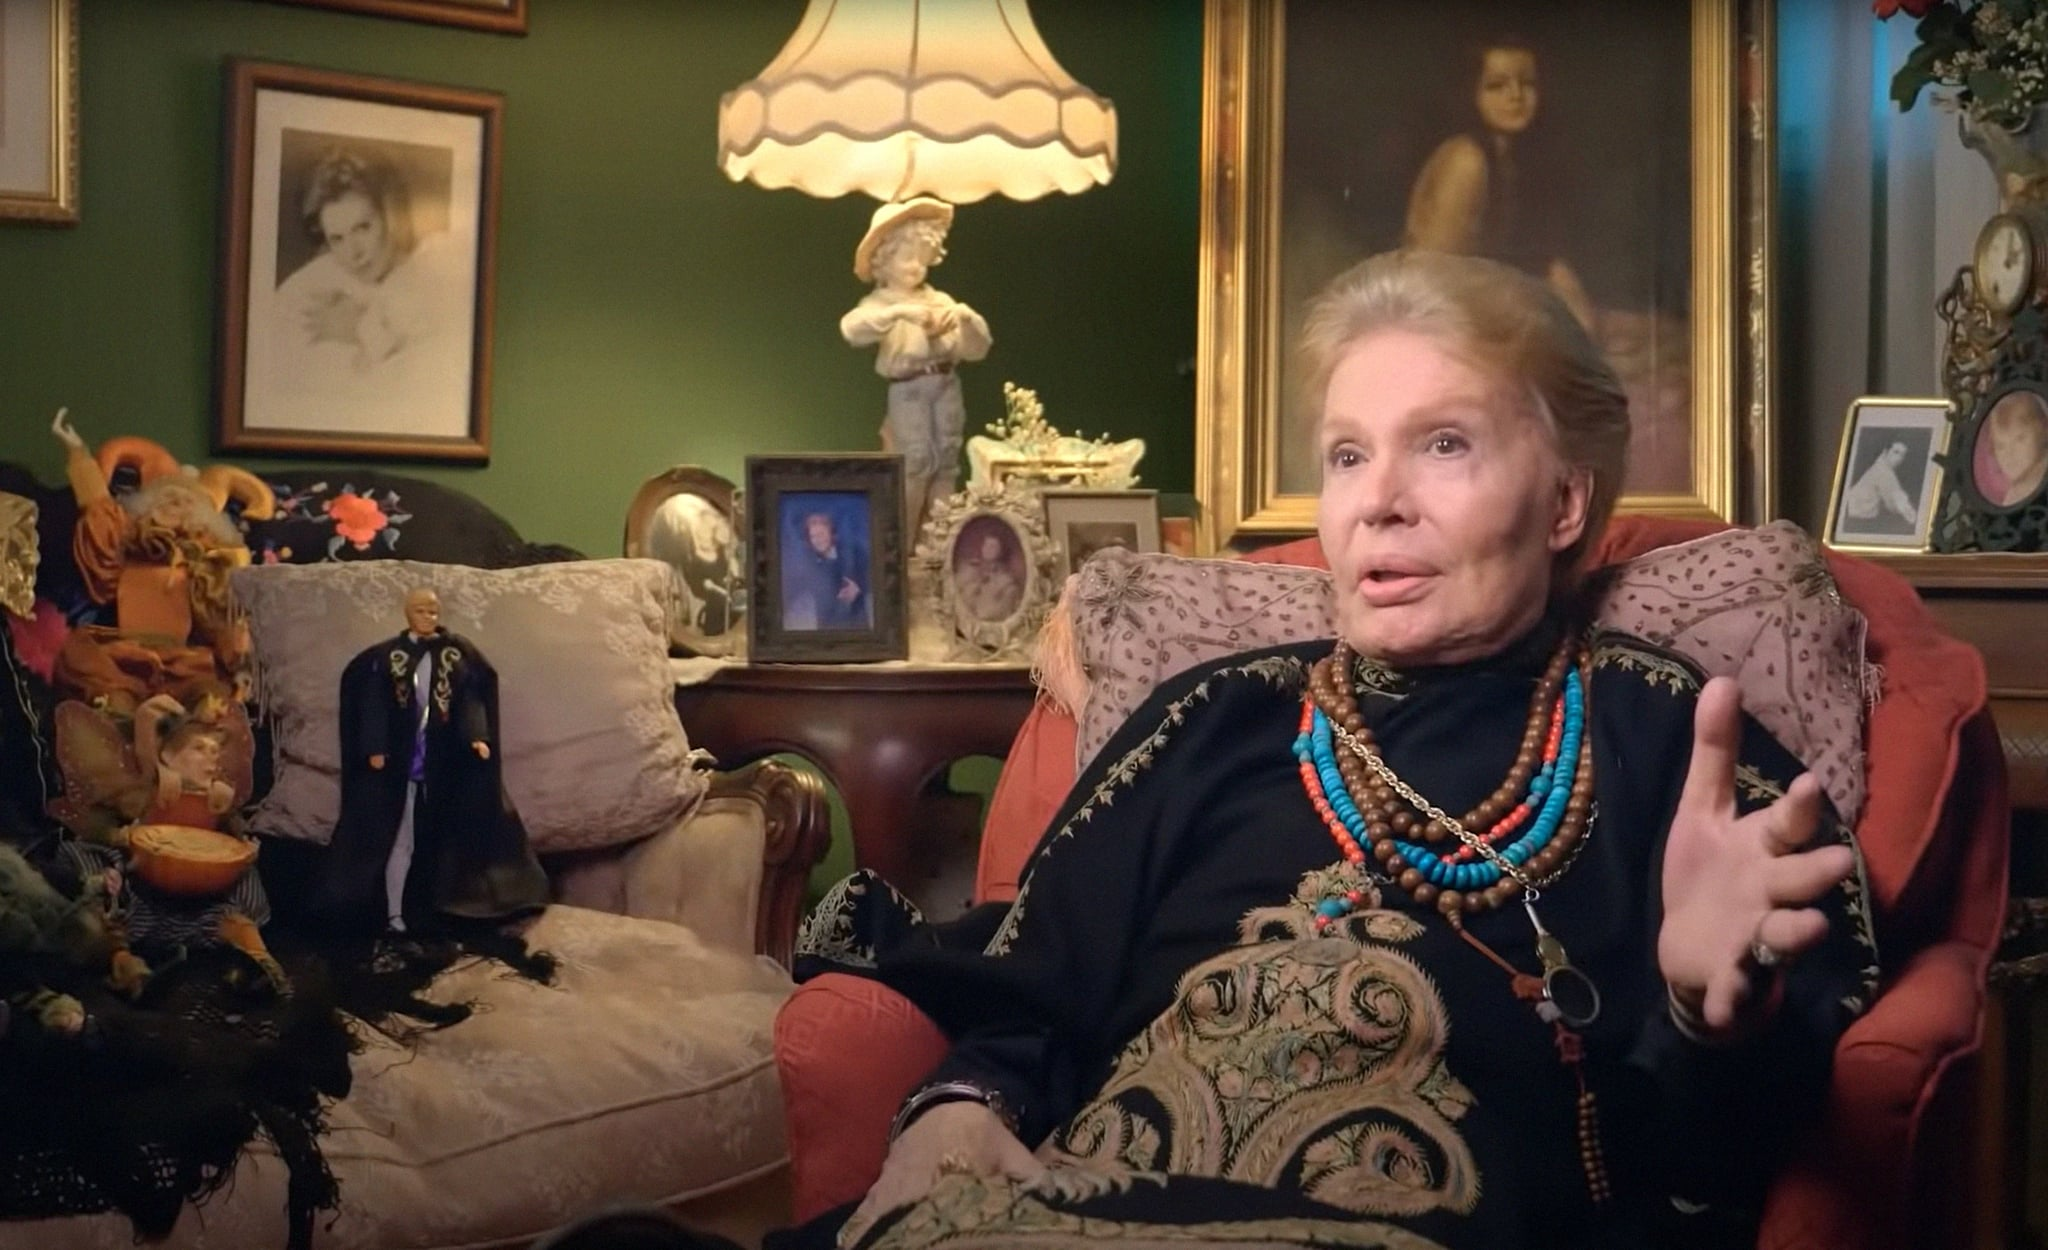 MUCHO MUCHO AMOR: THE LEGEND OF WALTER MERCADO, Puerto Rican astrologer Walter Mercado, 2020.  Netflix / Courtesy Everett Collection